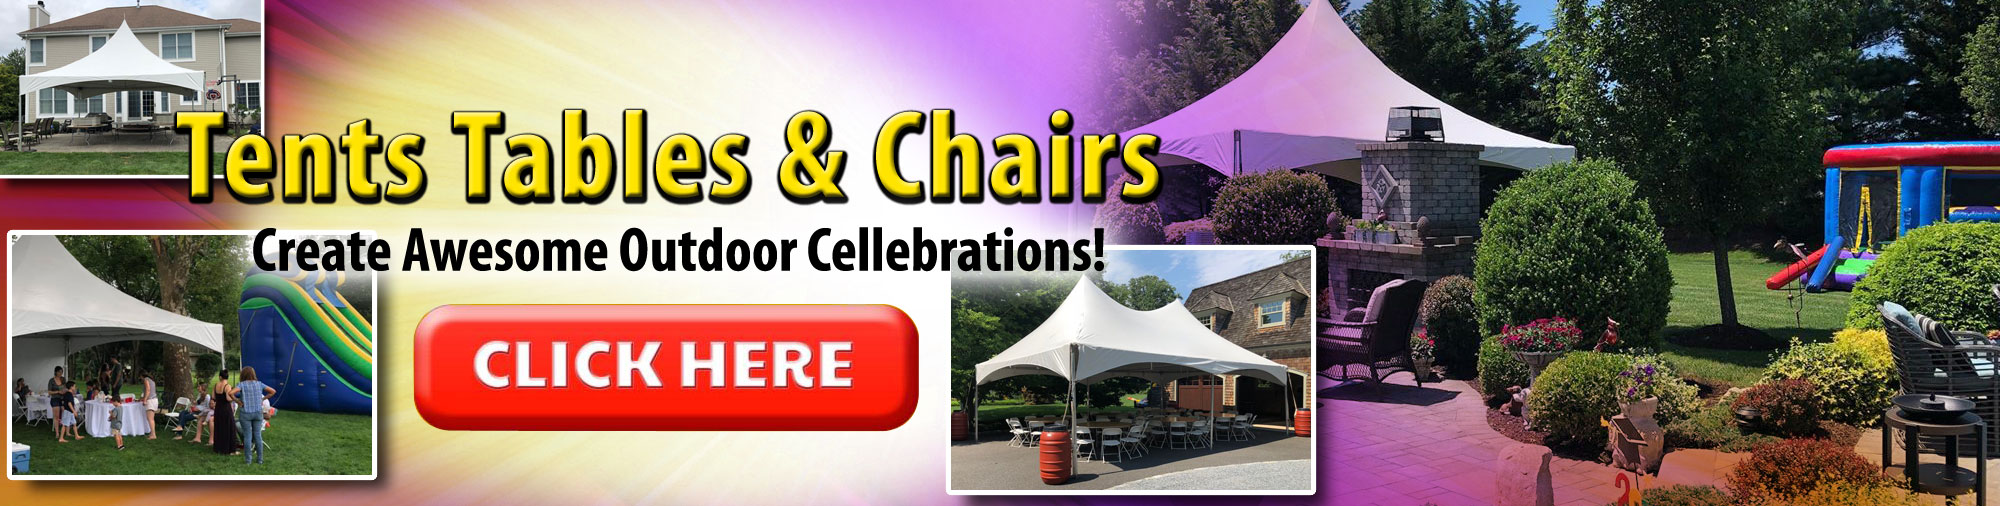 Tents table chairs rentals